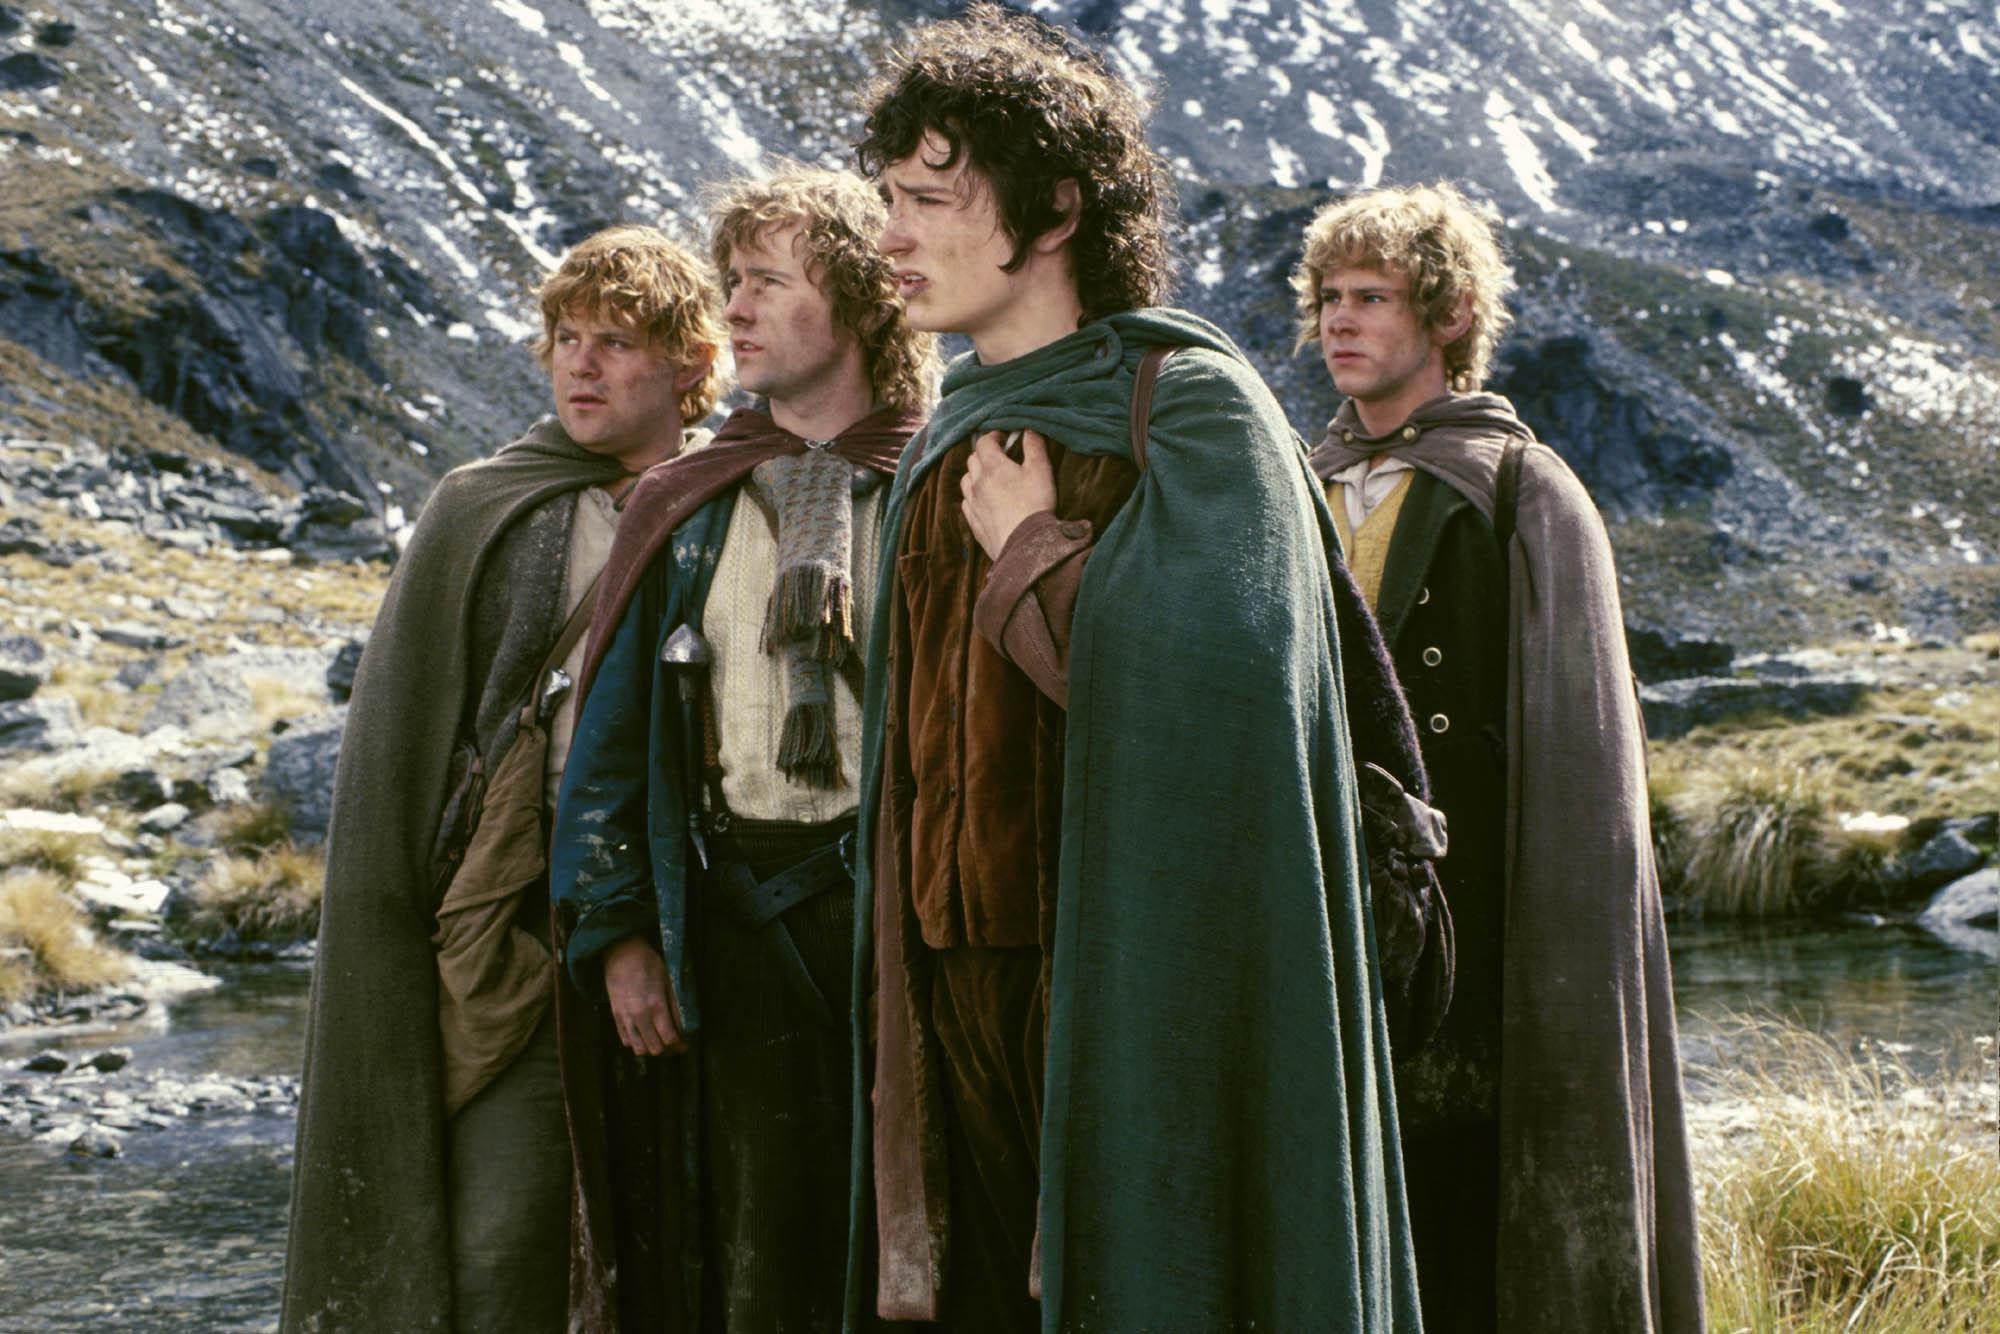 Actors, from left, Dominic Monaghan, Elijah Wood, Billy Boyd and Sean Astin, appear in a scene from the fantasy epic The Lord of the Rings. Photo: Handout